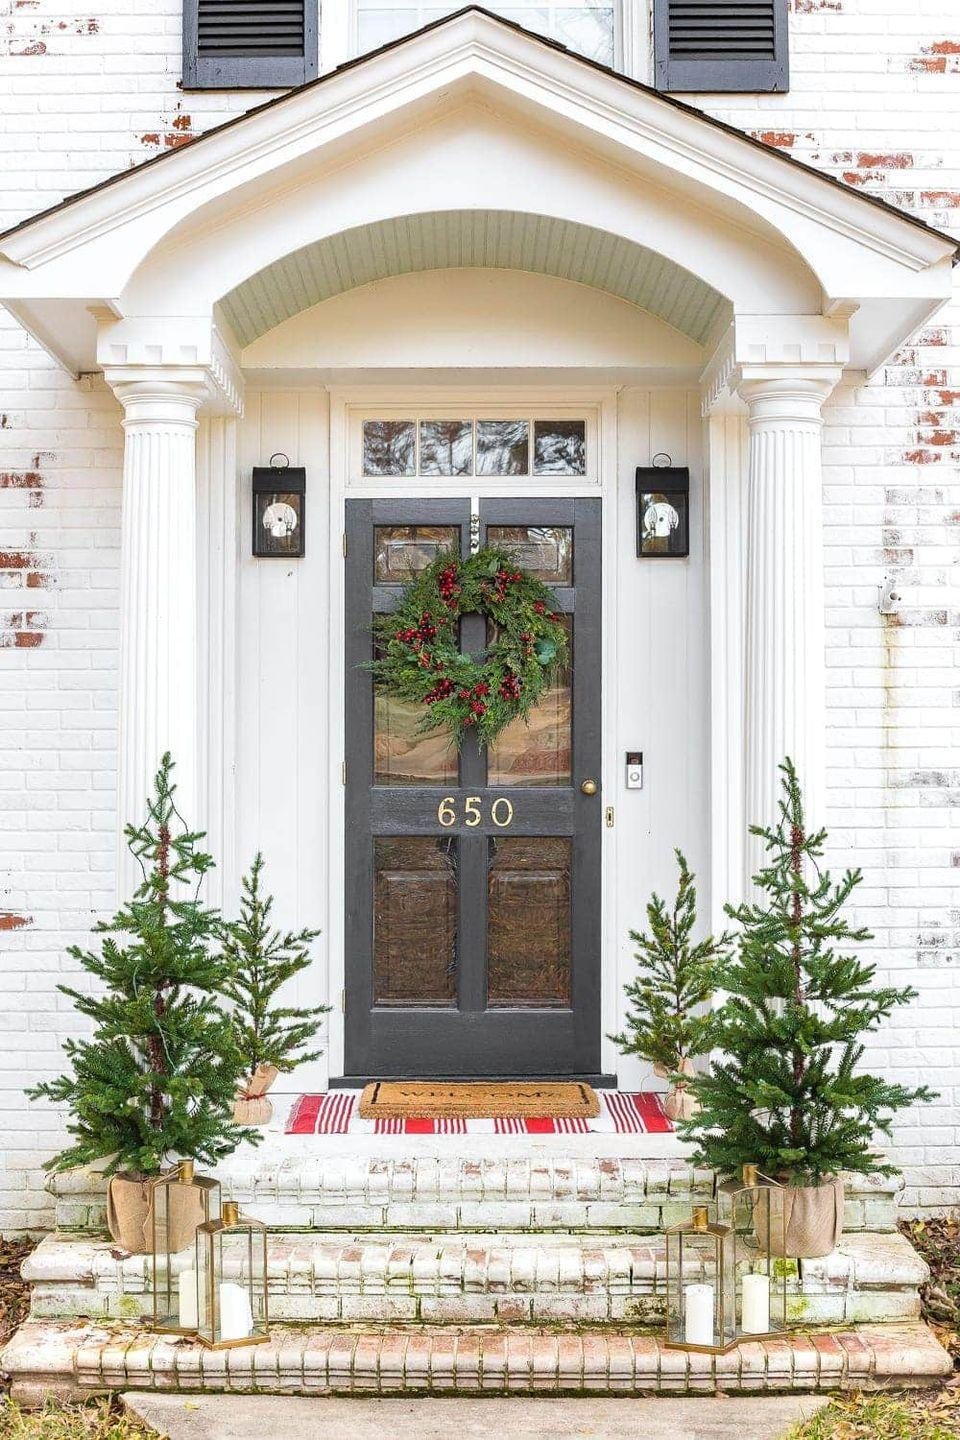 """<p>Trees, wreaths, and red berries lend a timeless look on a Christmas porch. White candles in glass-and-golden vessels add glamour and romance.<br></p><p><strong><em>Get the look at <a href=""""https://www.blesserhouse.com/colonial-christmas-outdoor-decor/"""" rel=""""nofollow noopener"""" target=""""_blank"""" data-ylk=""""slk:Bless'er House"""" class=""""link rapid-noclick-resp"""">Bless'er House</a>.</em></strong> </p>"""